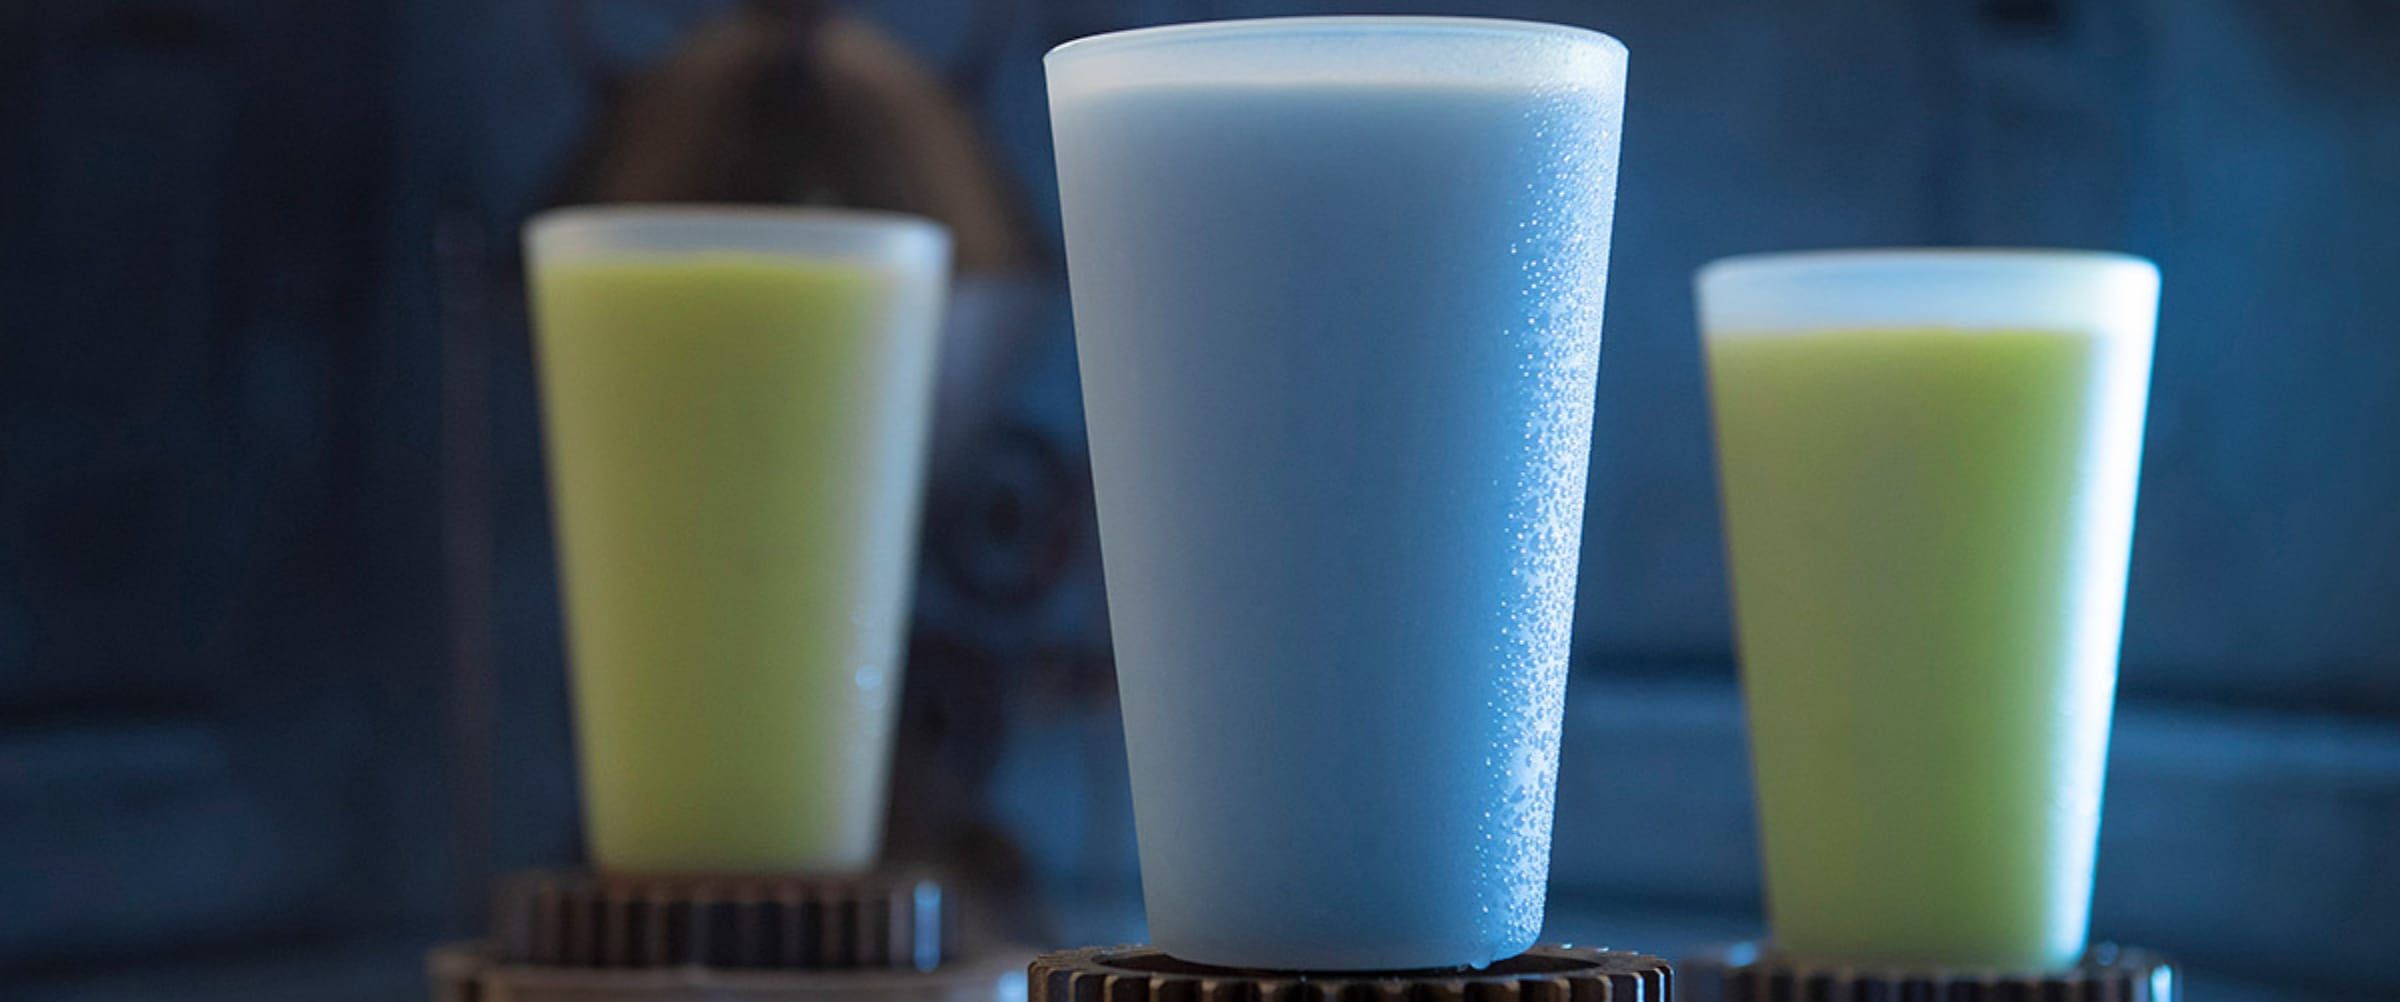 Star Wars: Galaxy's Edge | Blue Milk | Article Page Hero